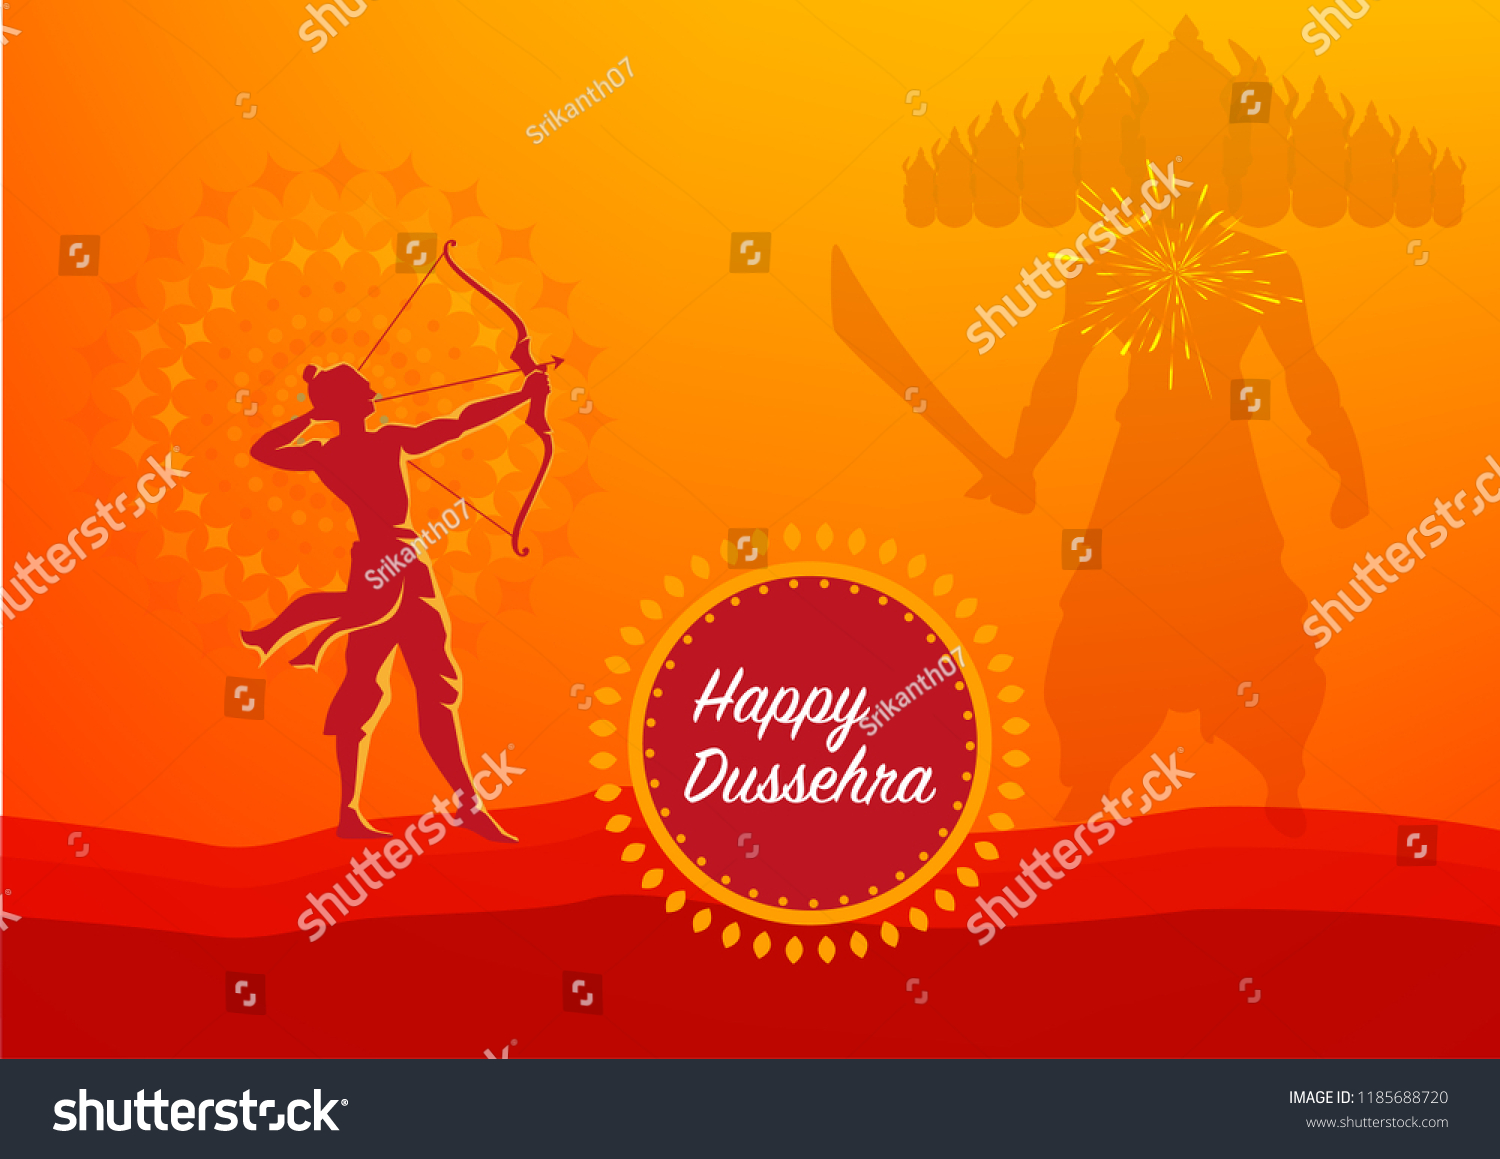 Vijayadashami also known as Dasara, Dusshera or Dussehra is a major Hindu festival celebrated at the end of Navratri every year 2018 #1185688720